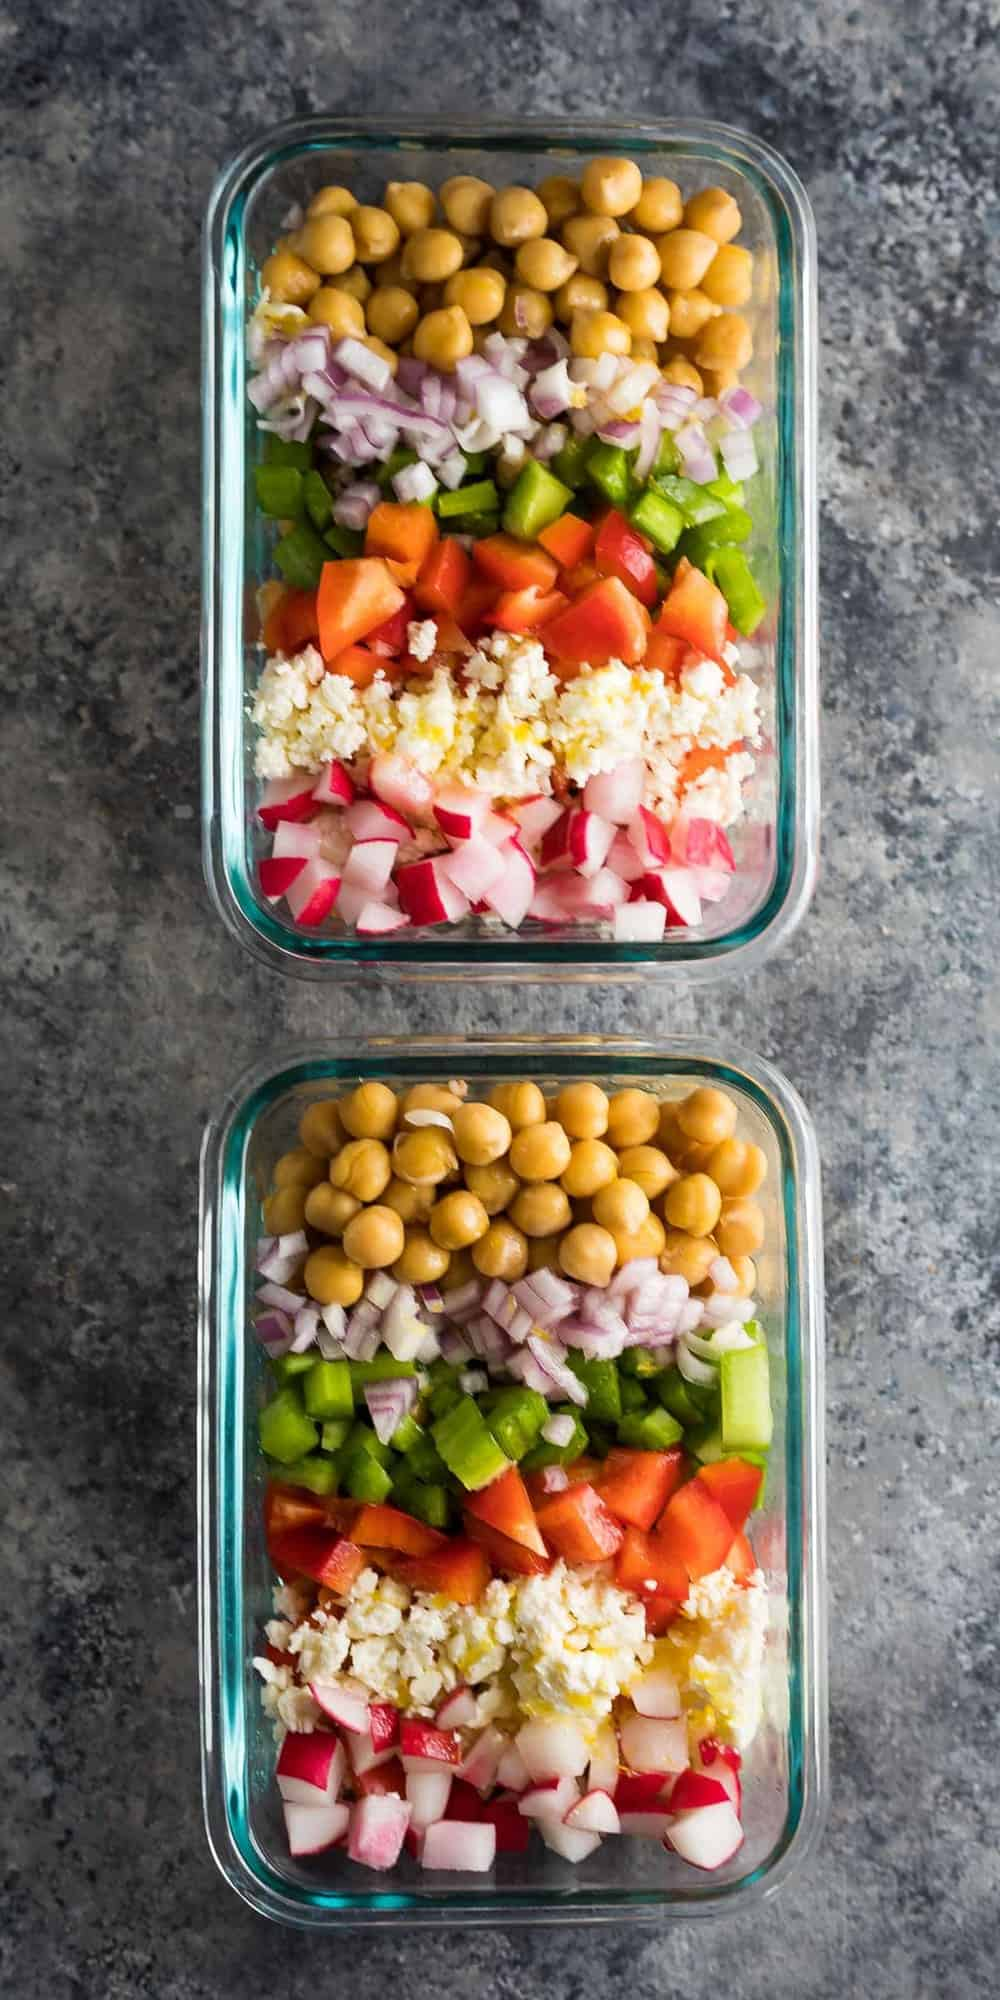 This meal prep chopped chickpea salad can be made on the weekend and enjoyed throughout the week!  Store them in meal prep containers, or as jar salads.